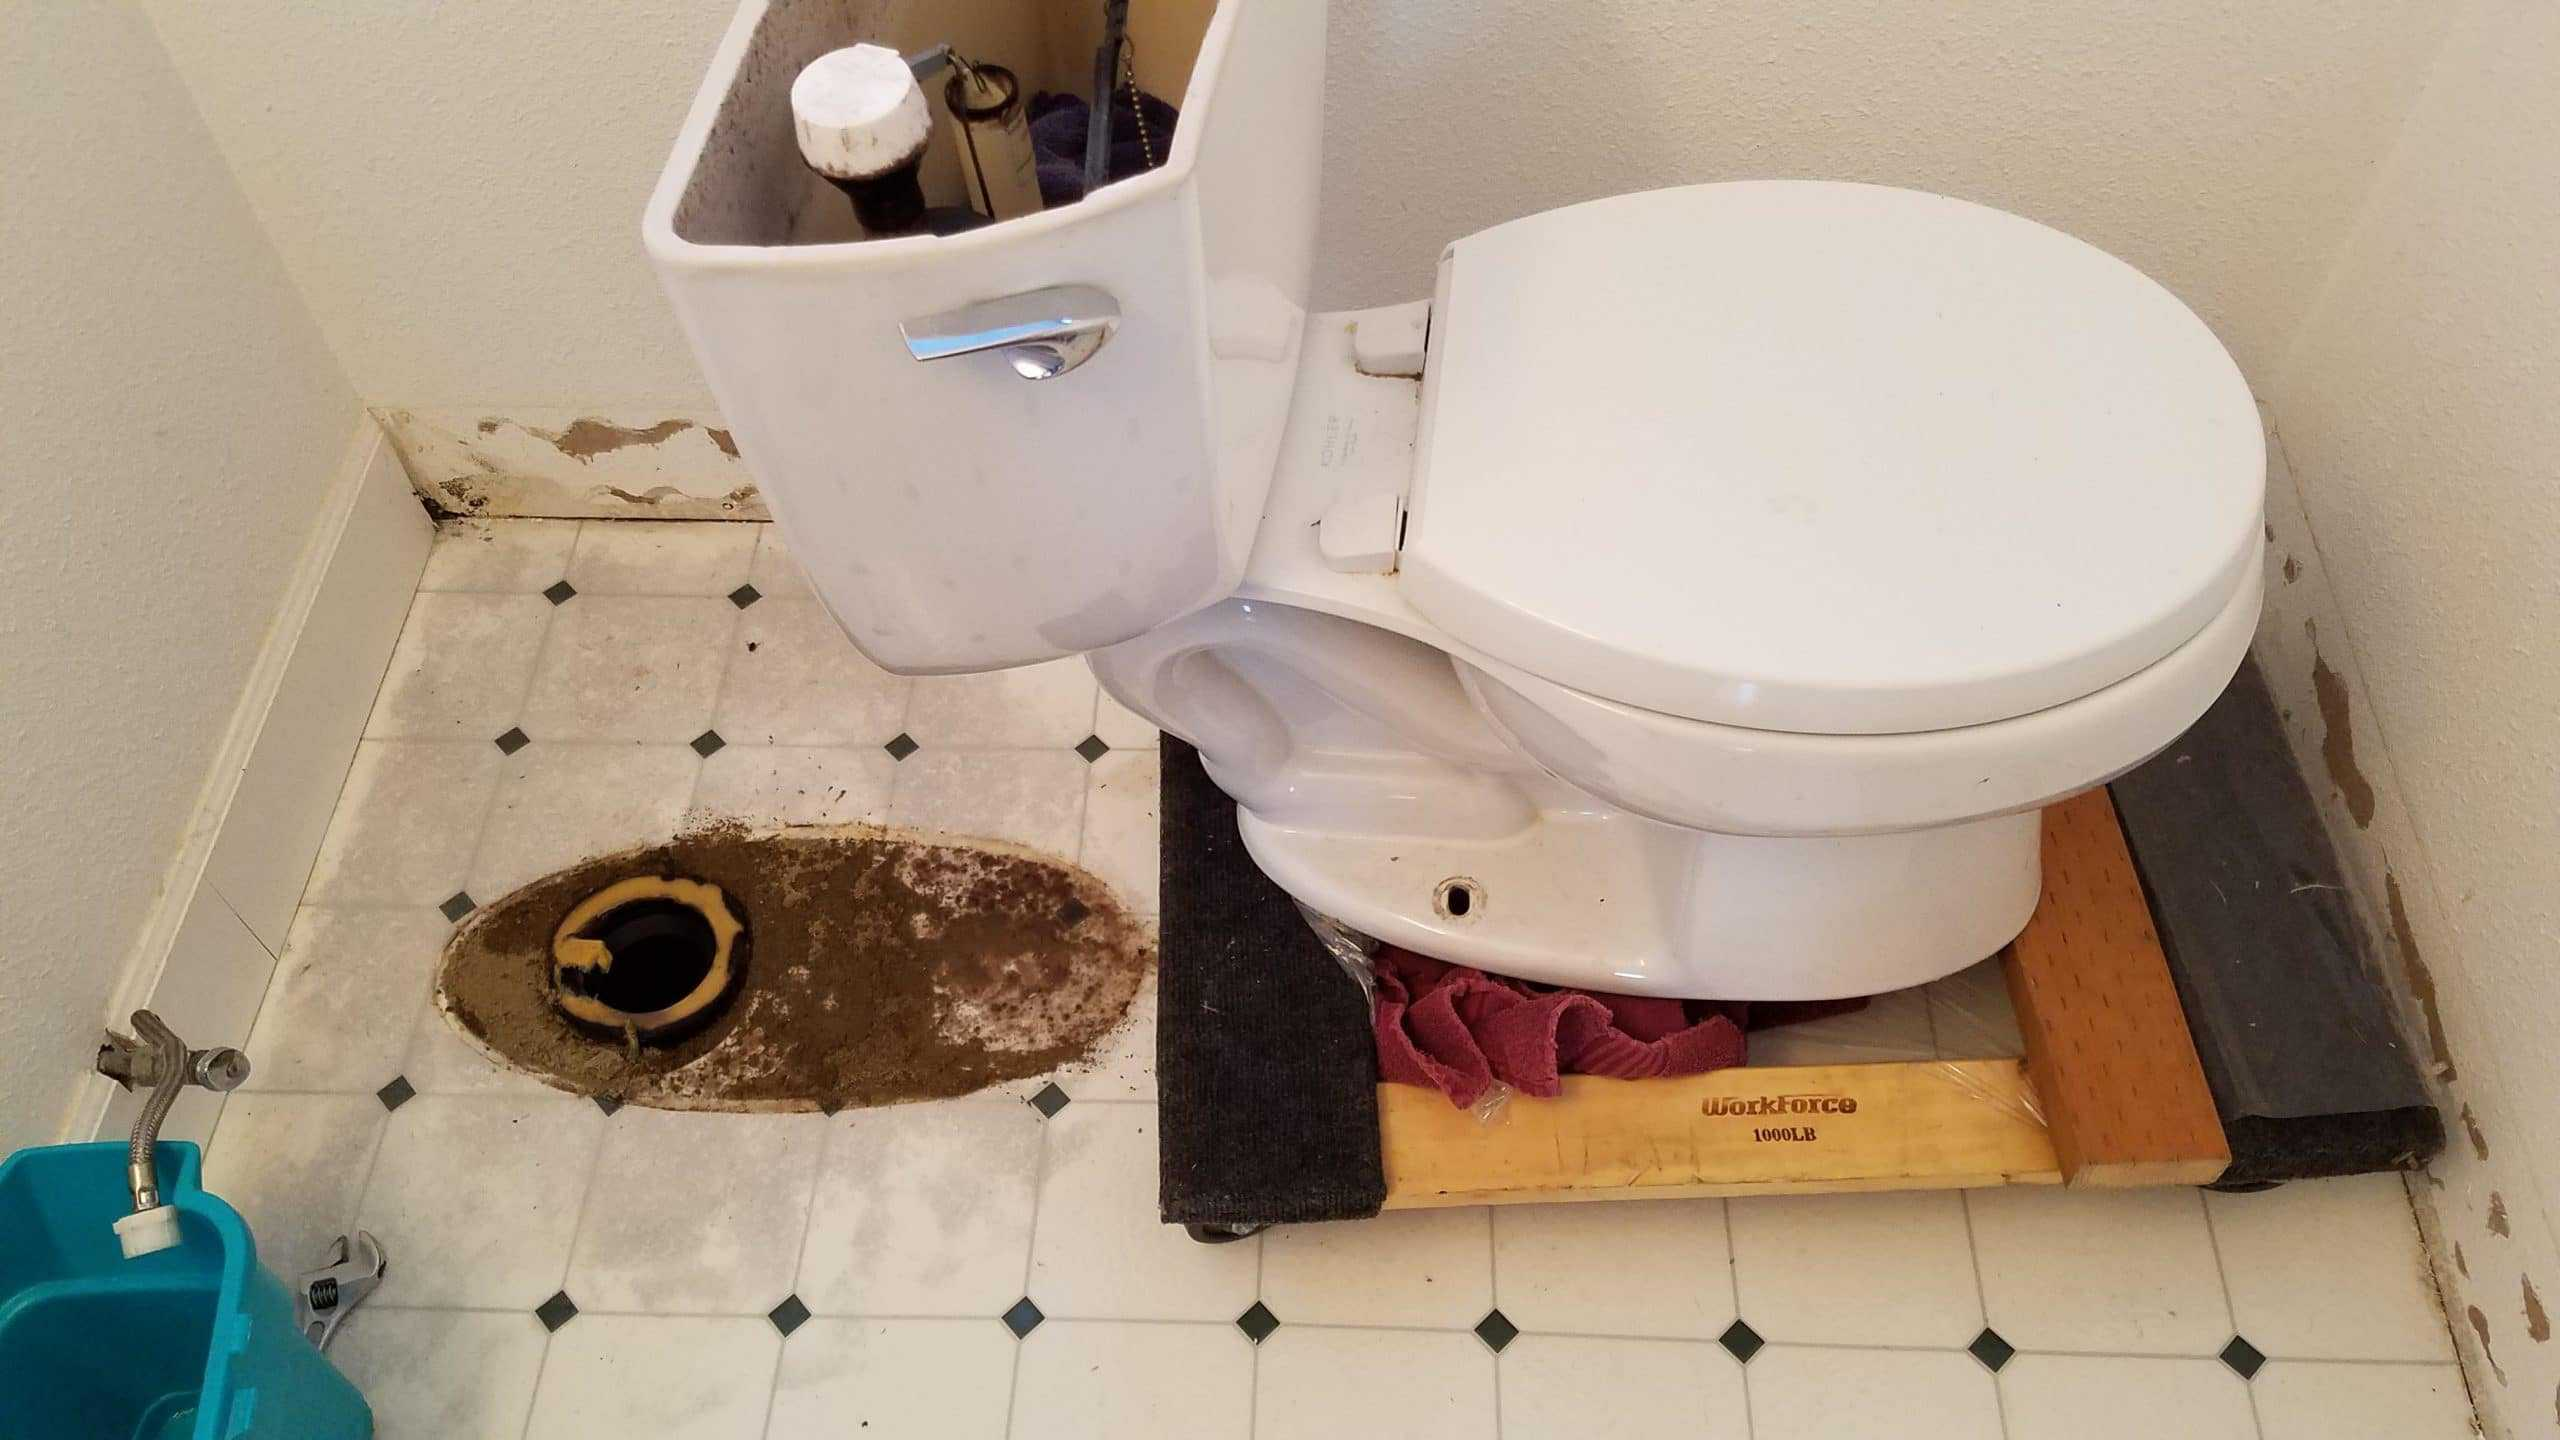 removal of old toilet and plumber is ready to install a new one